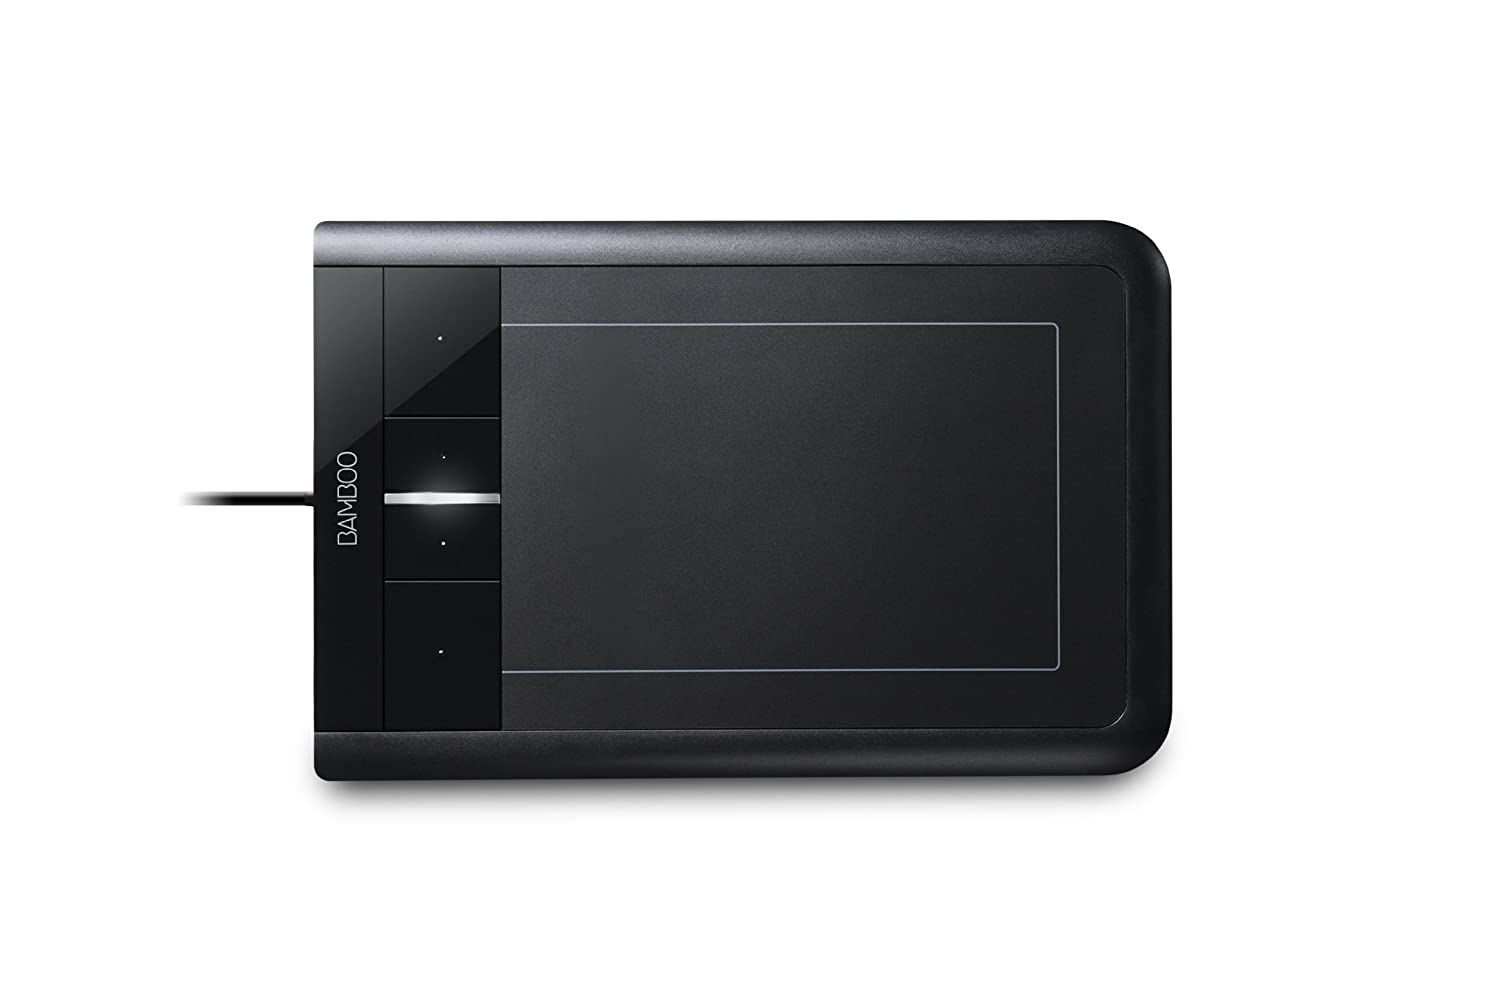 WACOM BAMBOO TOUCH WINDOWS 7 64BIT DRIVER DOWNLOAD